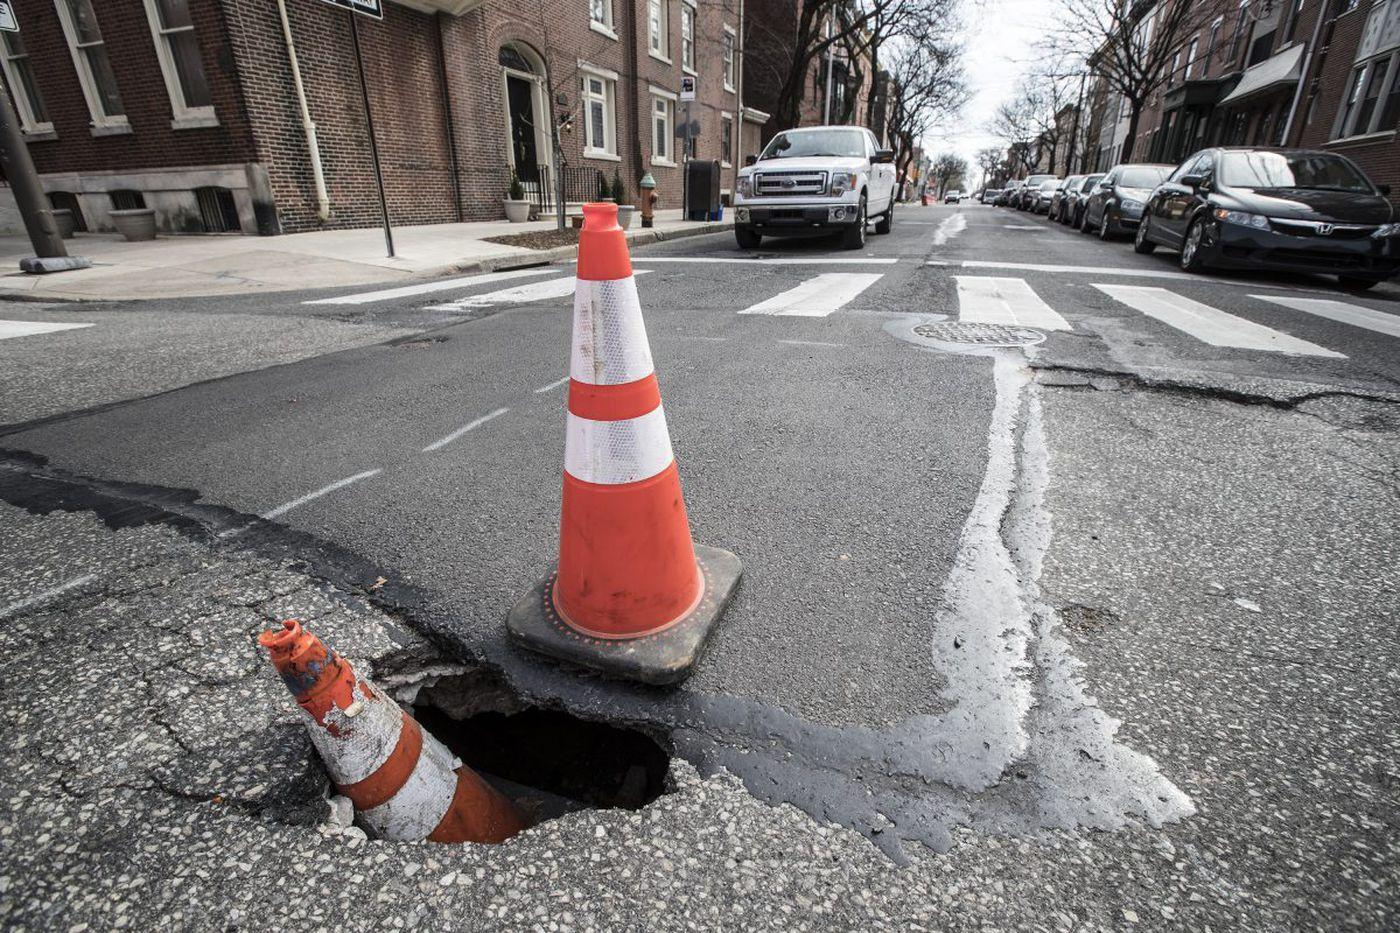 Pothole-fighting street artist Wanksy is the hero Philly needs right now | Michael Smerconish